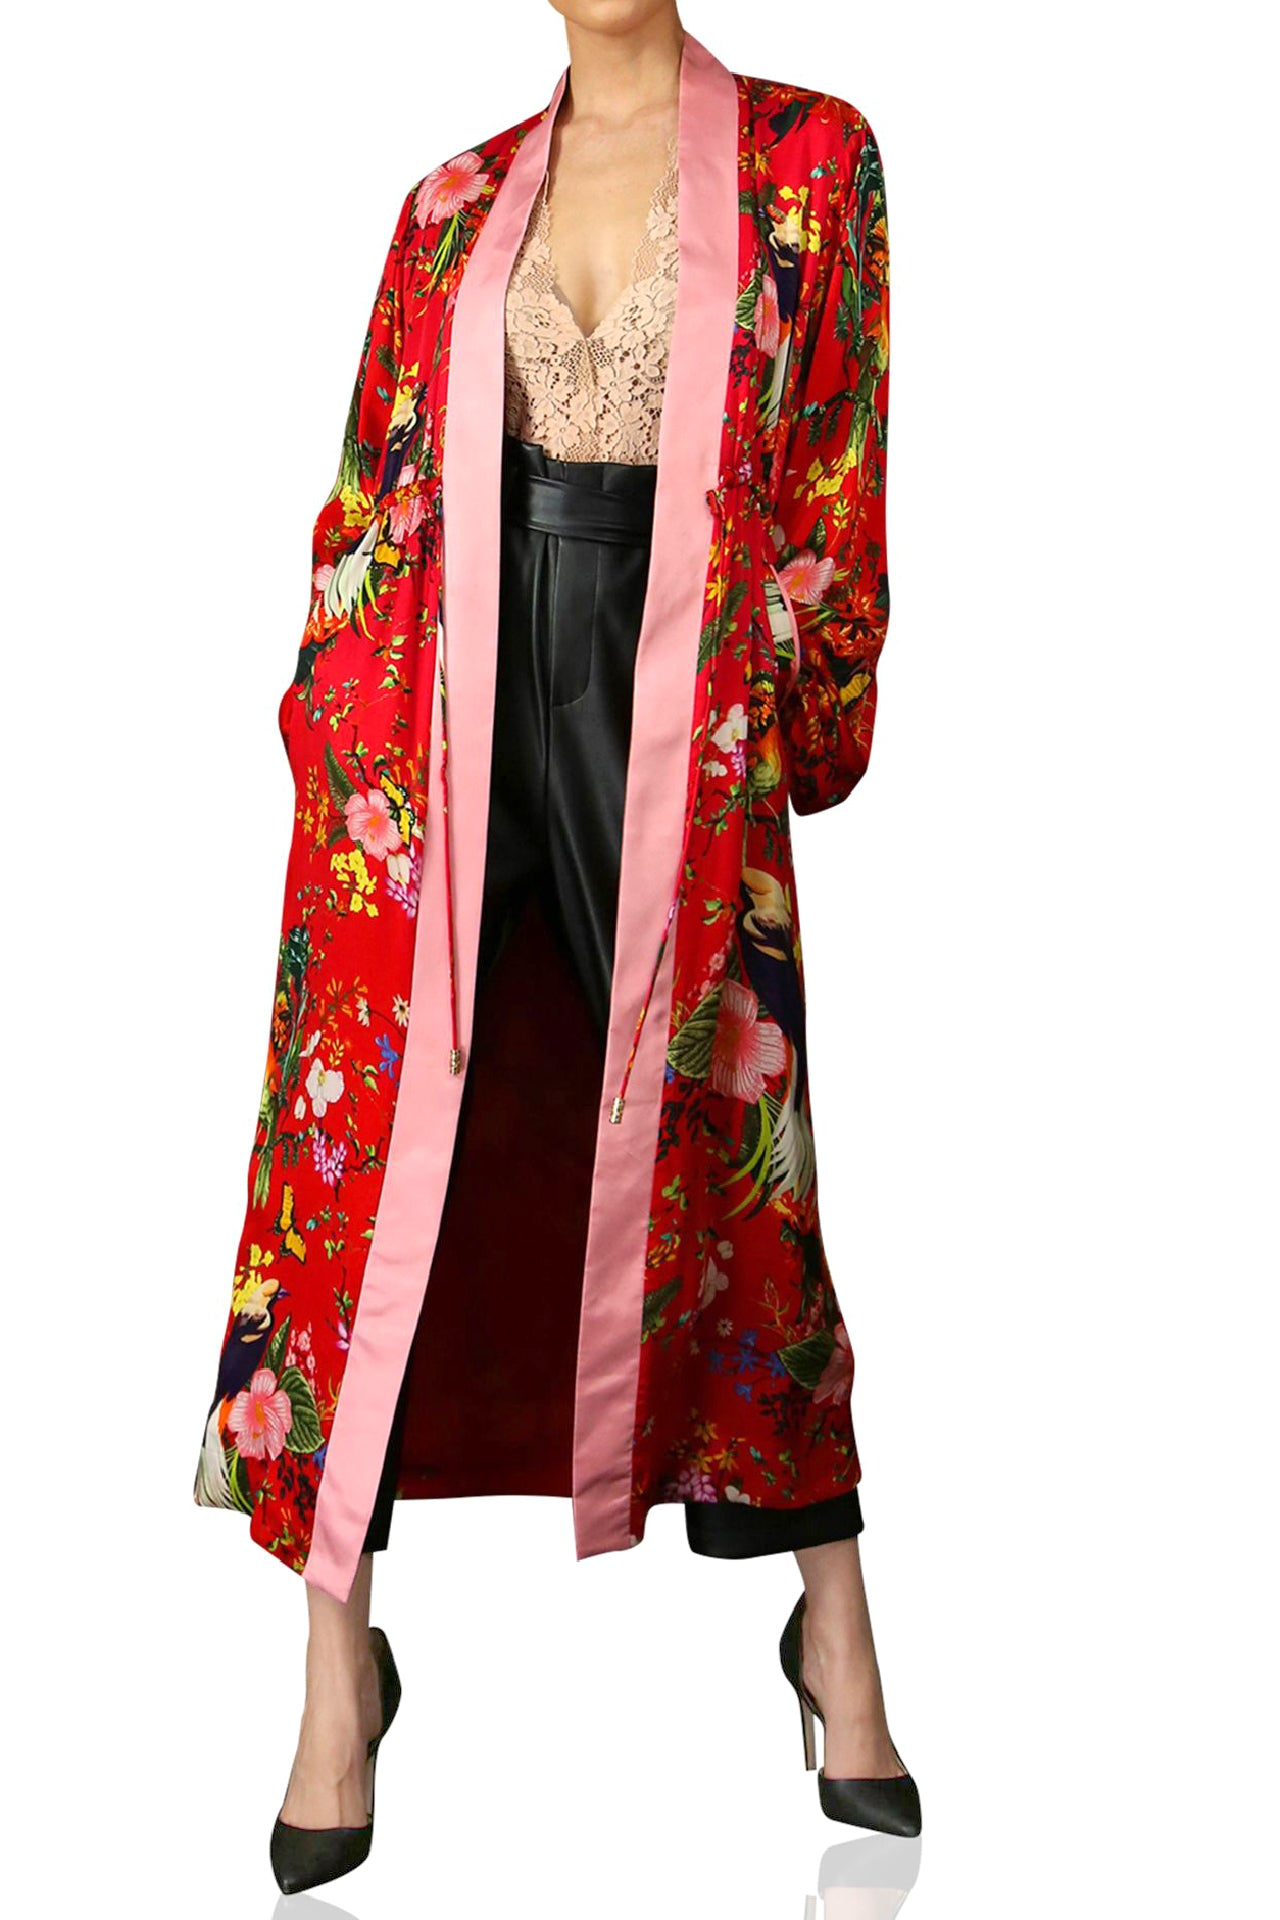 Silk-KImono-Robe-Dress-By-Kyle-Richards